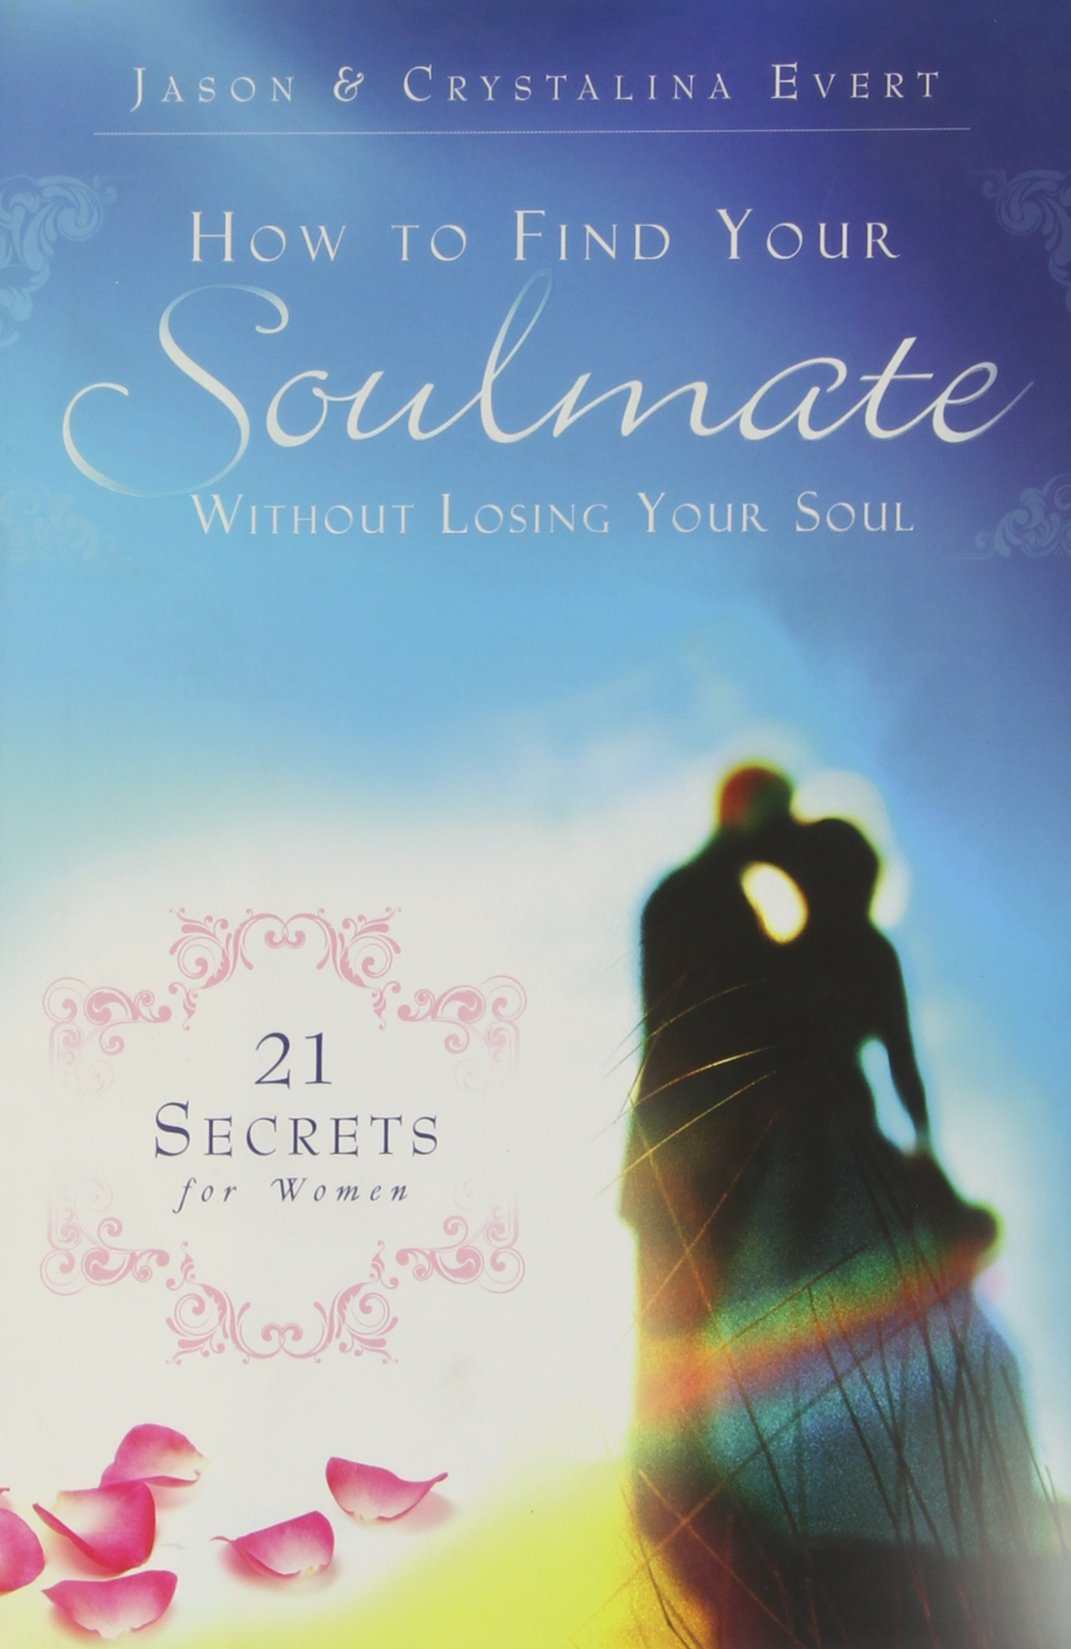 How to choose a soul mate